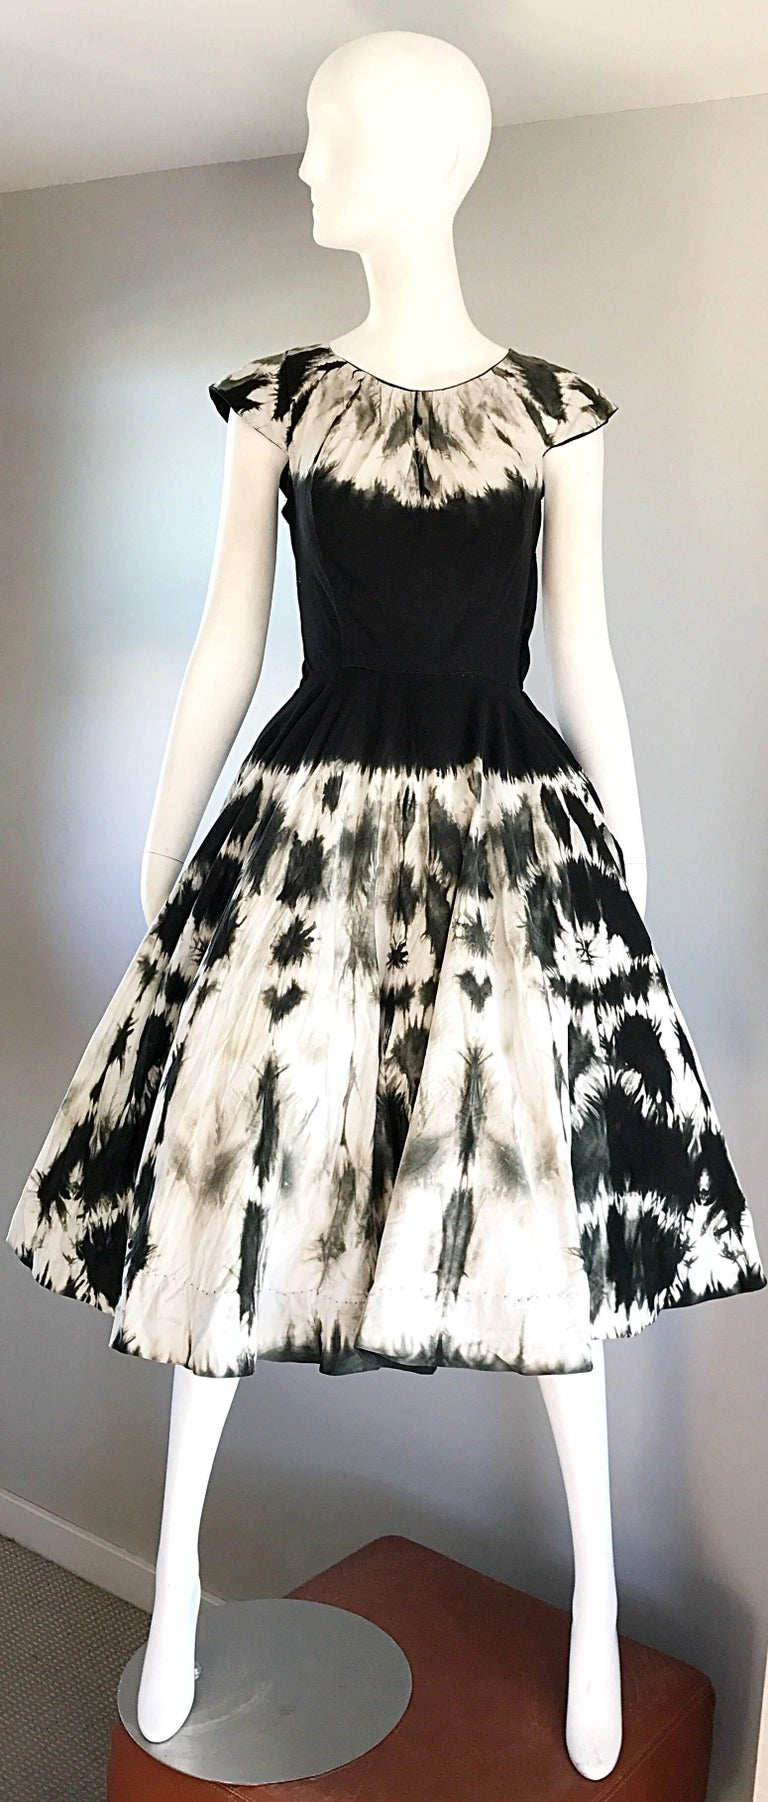 1950s Madalyn Miller 1950s Black And White Tie Dye Cotton